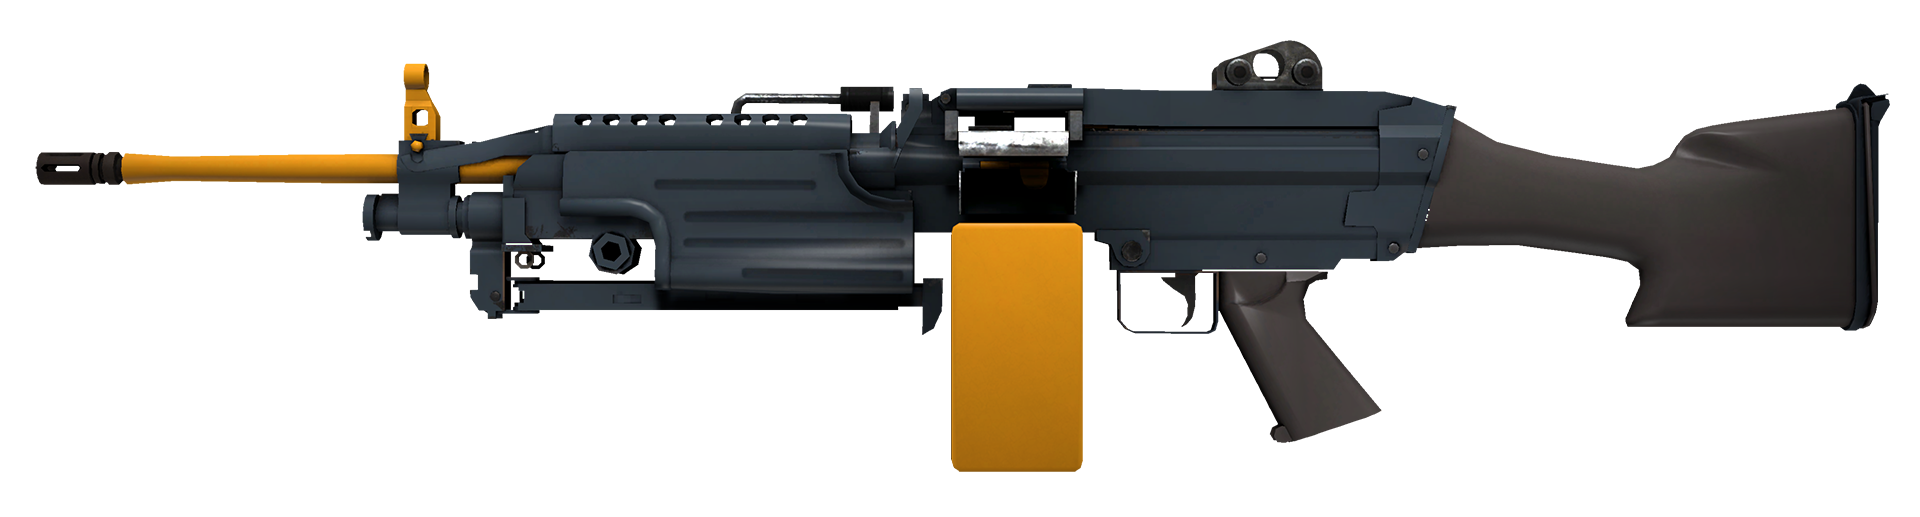 M249 Impact Drill Large Rendering